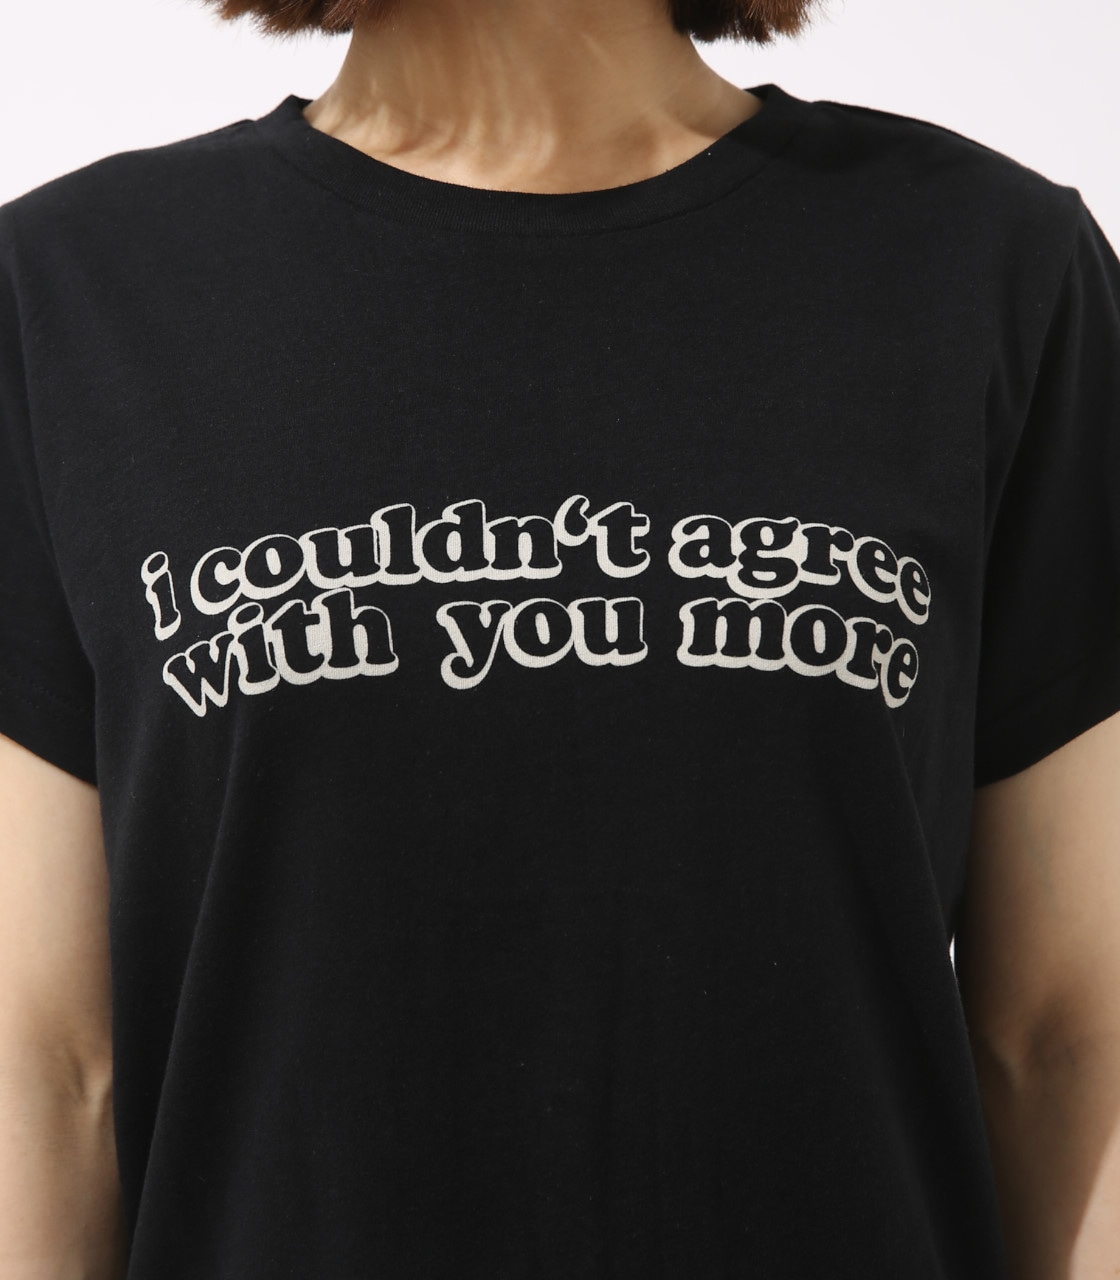 【AZUL BY MOUSSY】With you more TEE 詳細画像 BLK 8